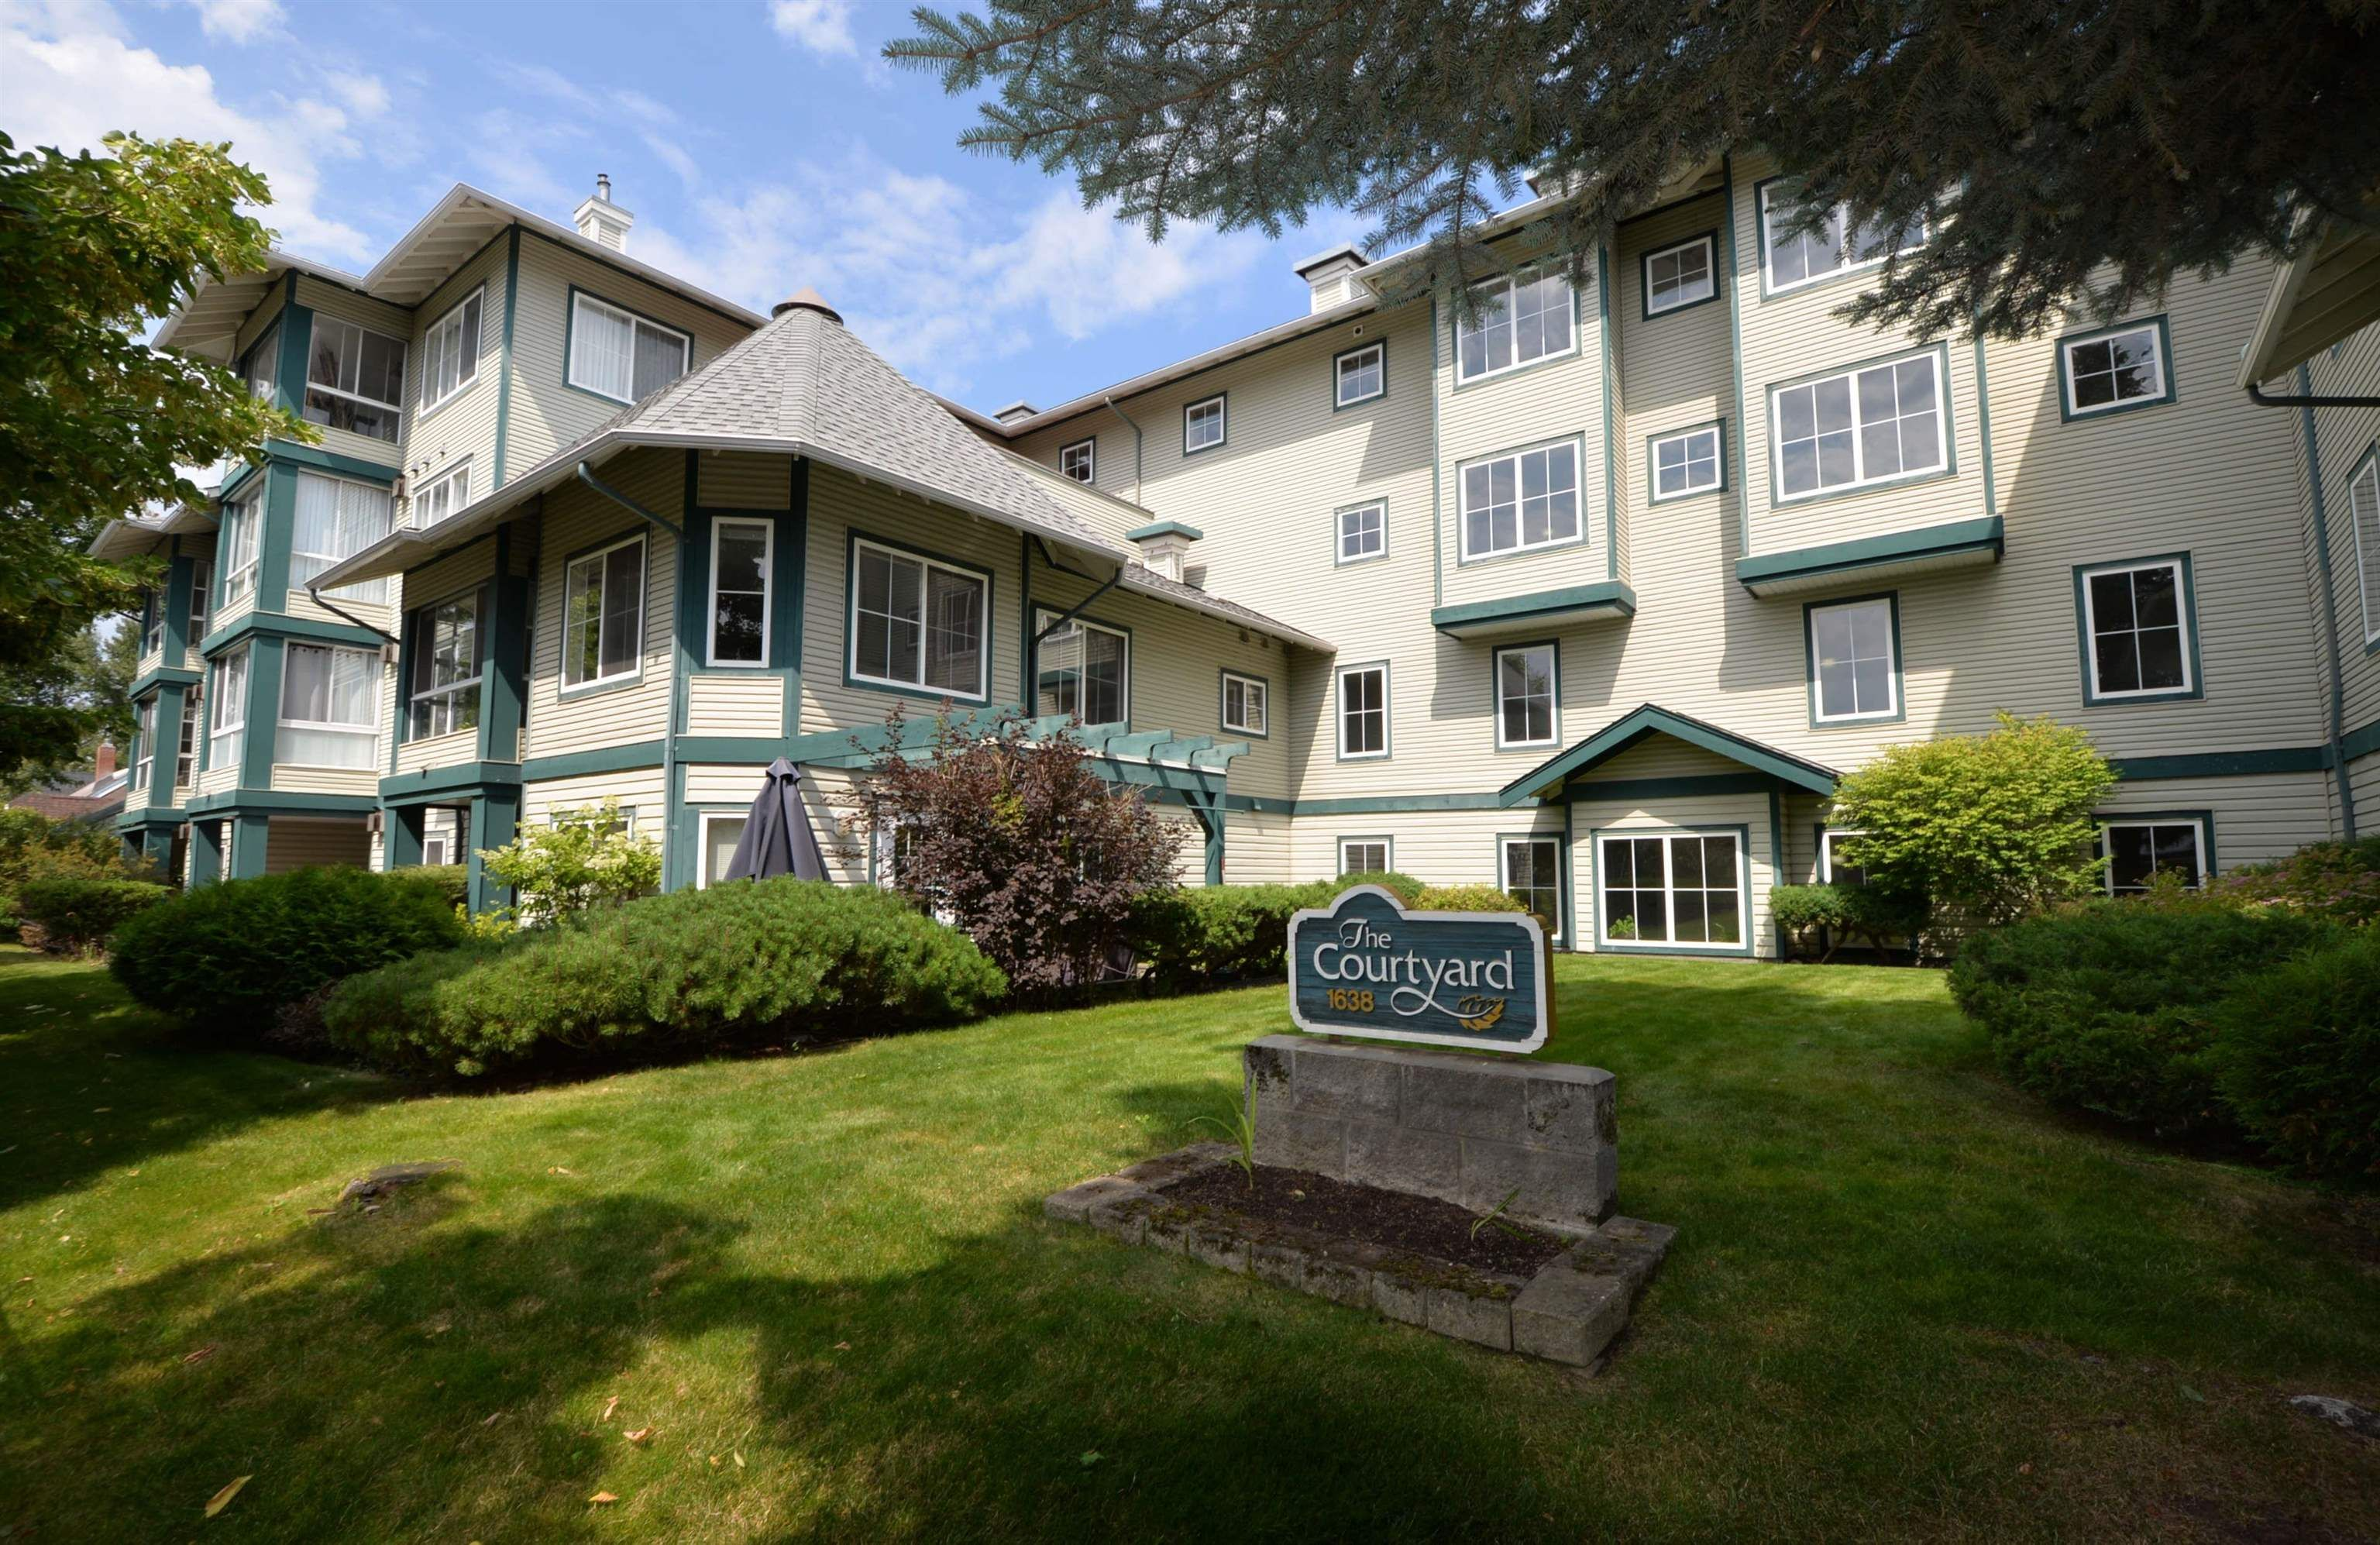 """Main Photo: #105 1638 6TH Avenue in Prince George: Crescents Condo for sale in """"The Courtyard"""" (PG City Central (Zone 72))  : MLS®# R2614064"""